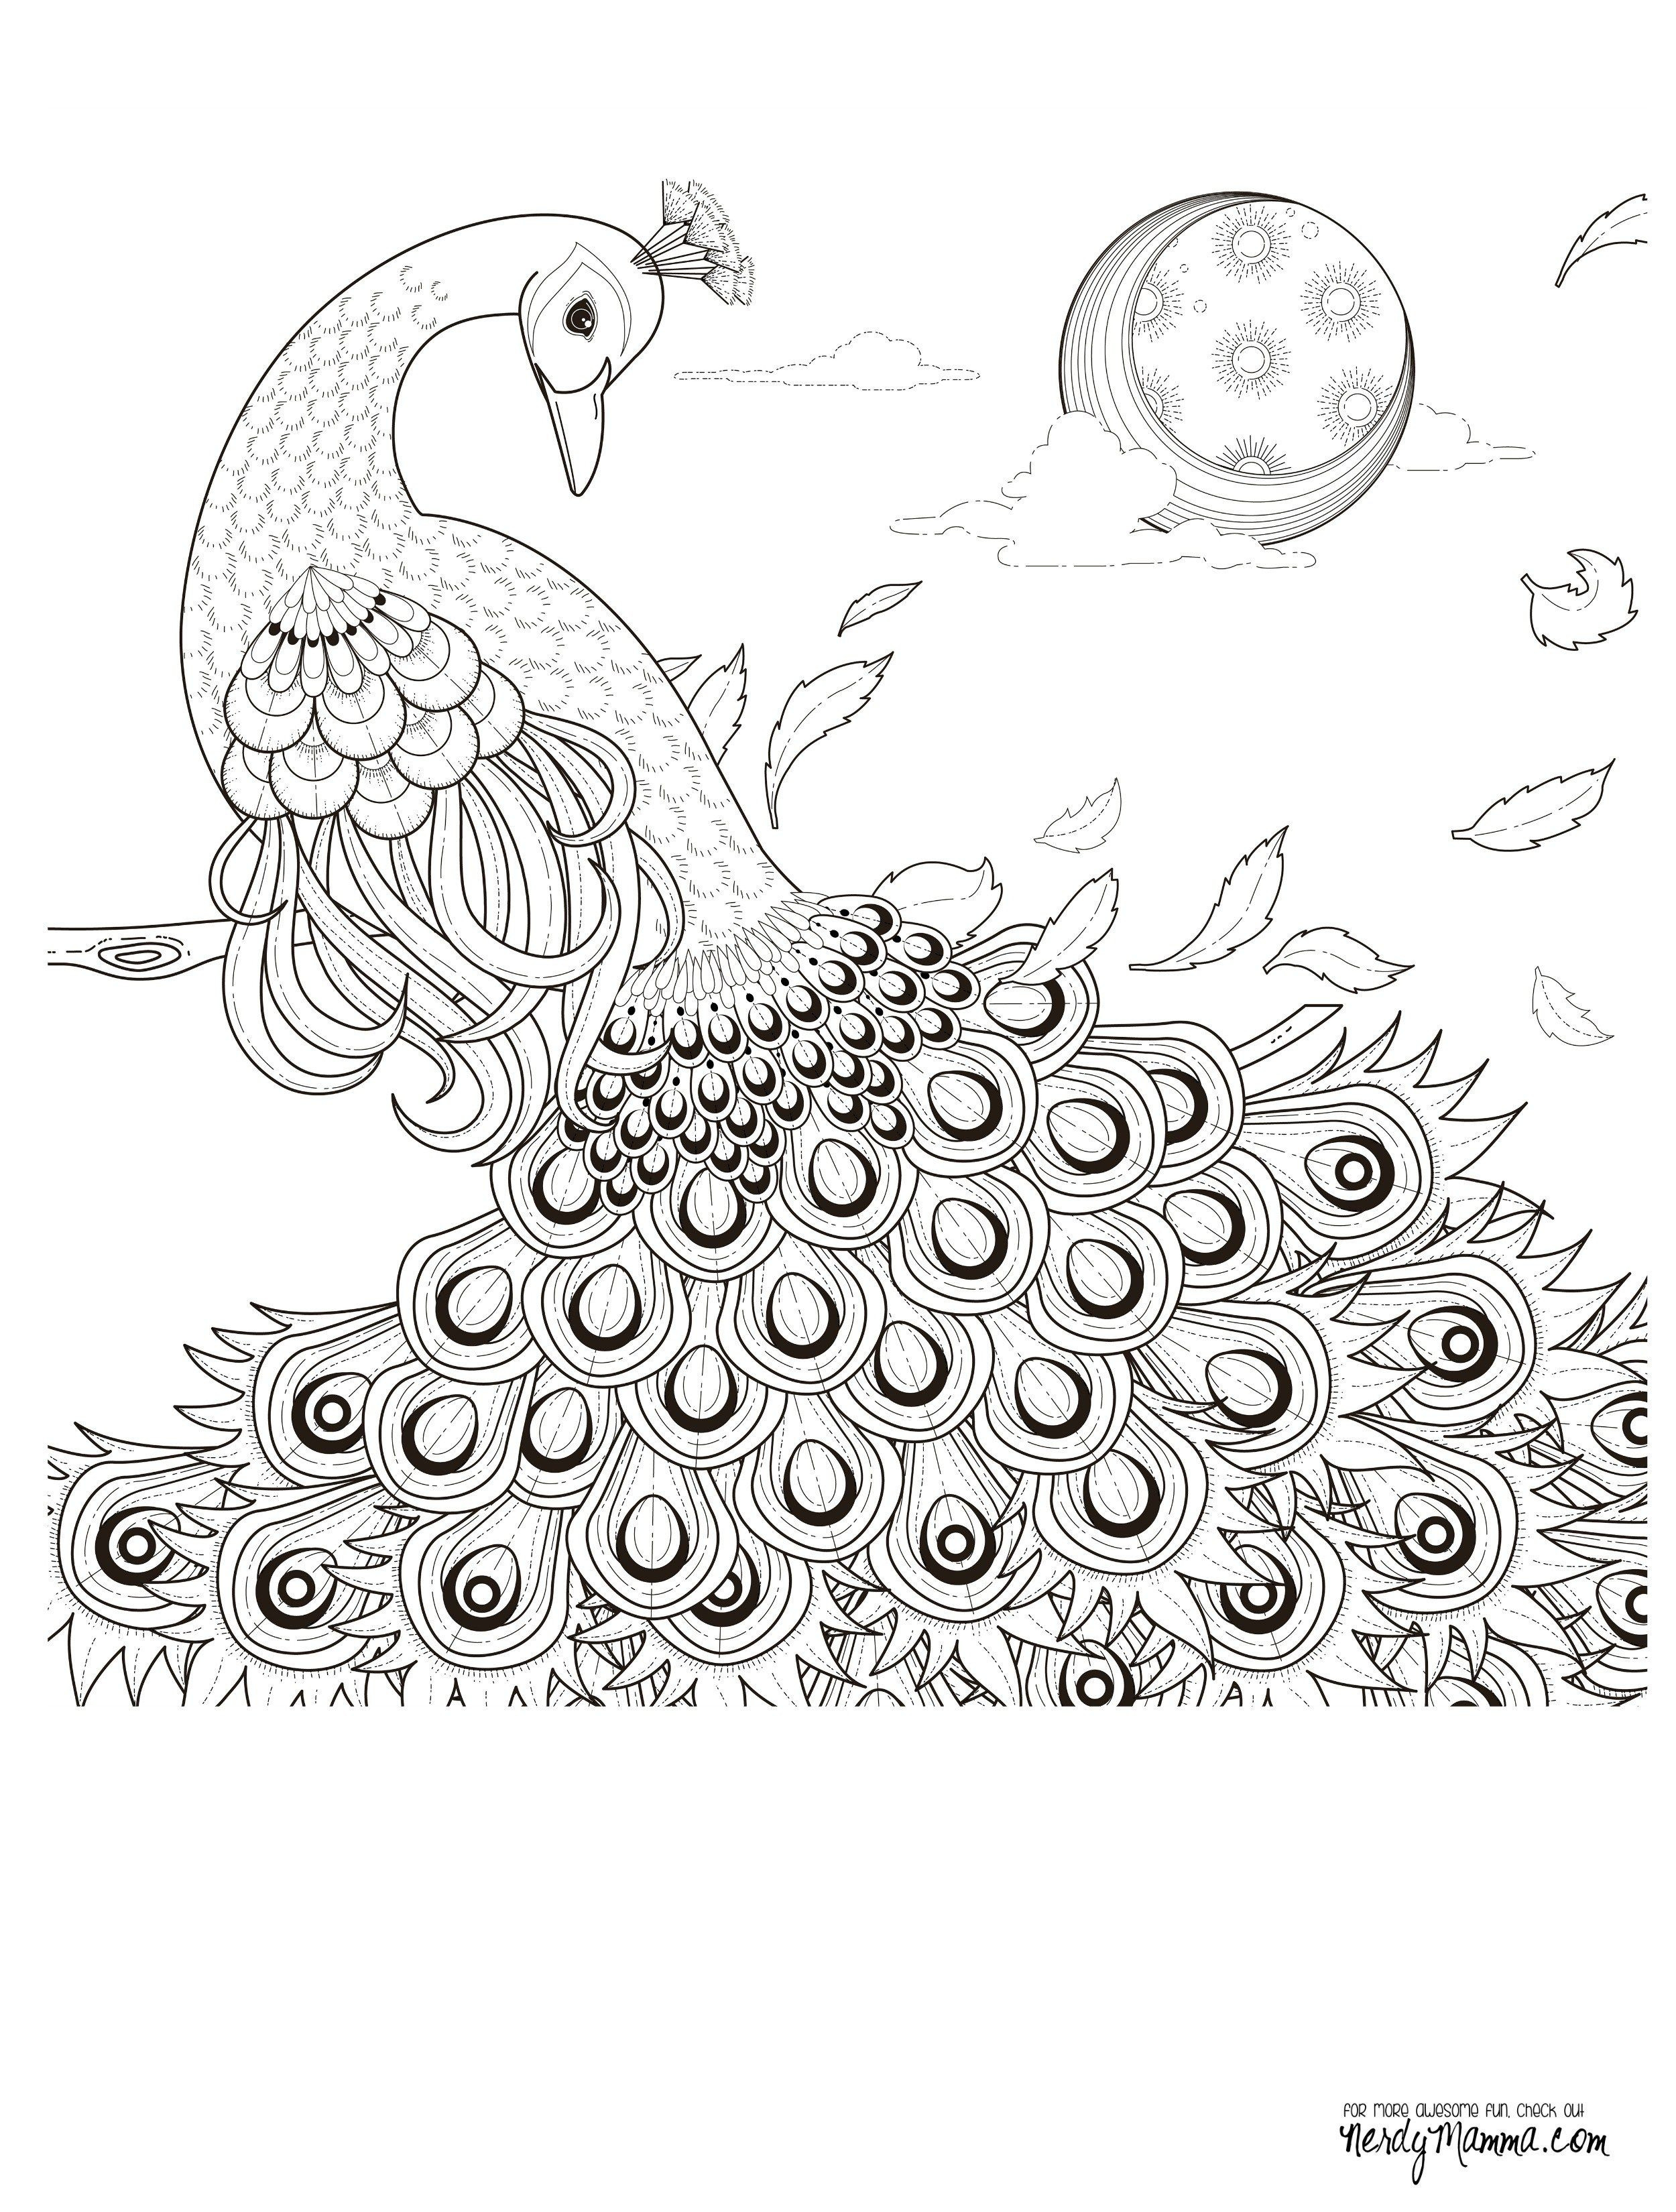 Ben Und Holly Ausmalbilder Neu Peacock Feather Coloring Pages Colouring Adult Detailed Advanced Das Bild